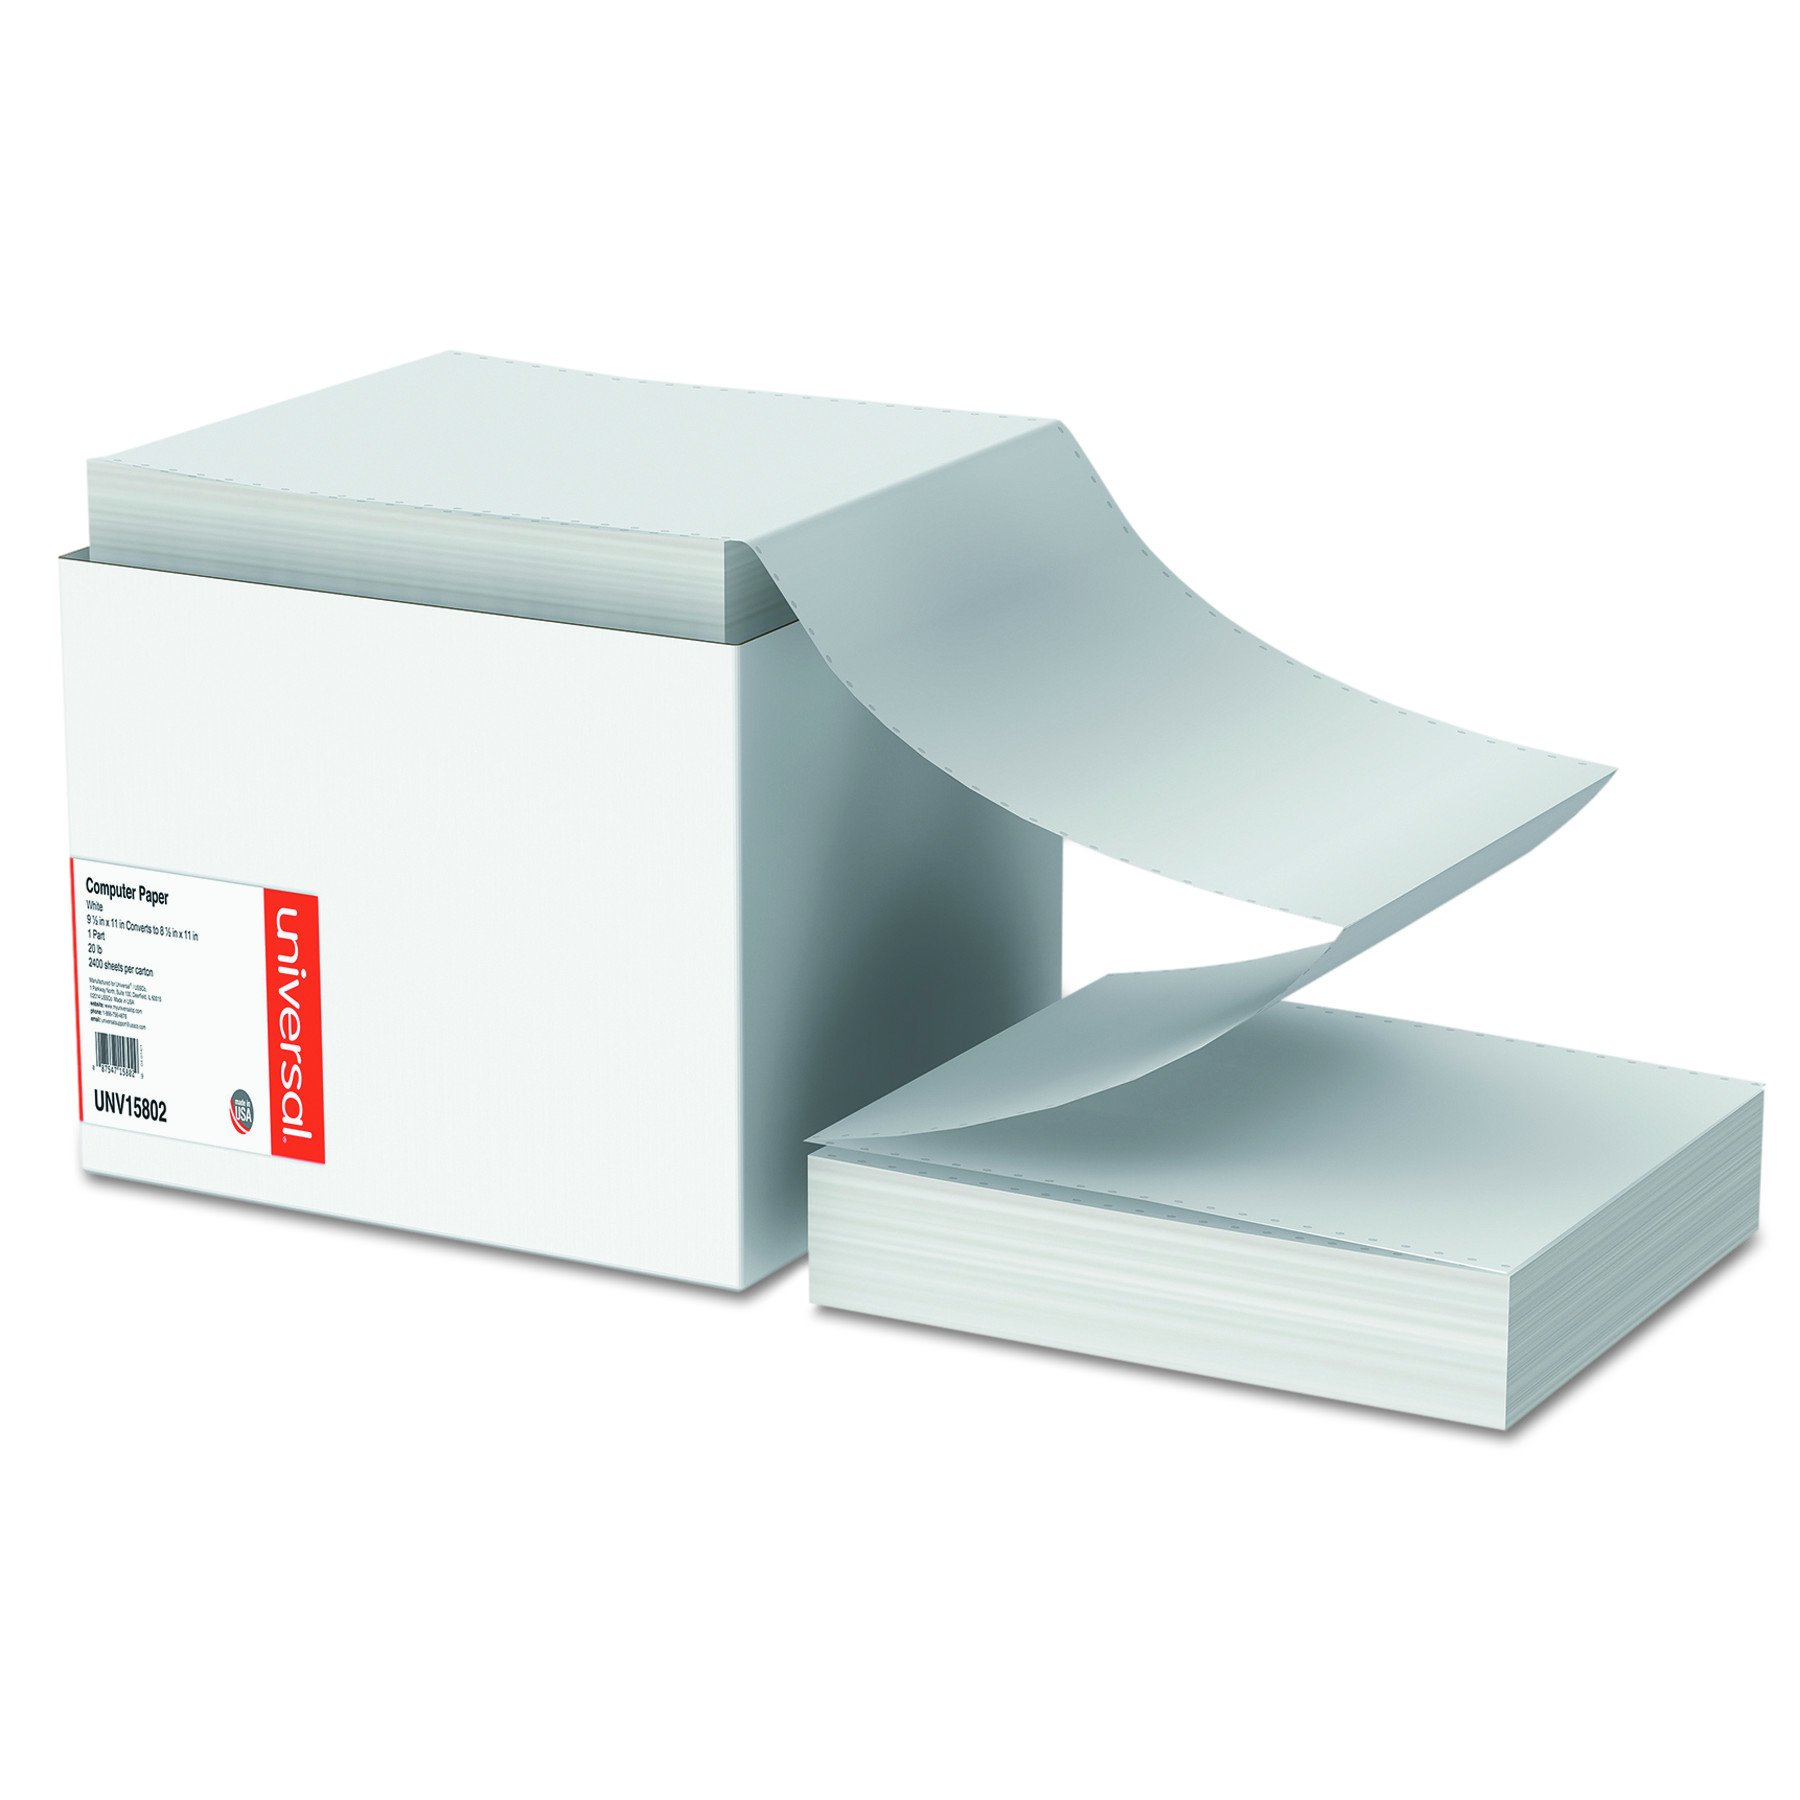 Universal 15802 Computer Paper, 20lb, 9-1/2 x 11, Letter Trim Perforations, White (Case of 2400 Sheets) by Universal